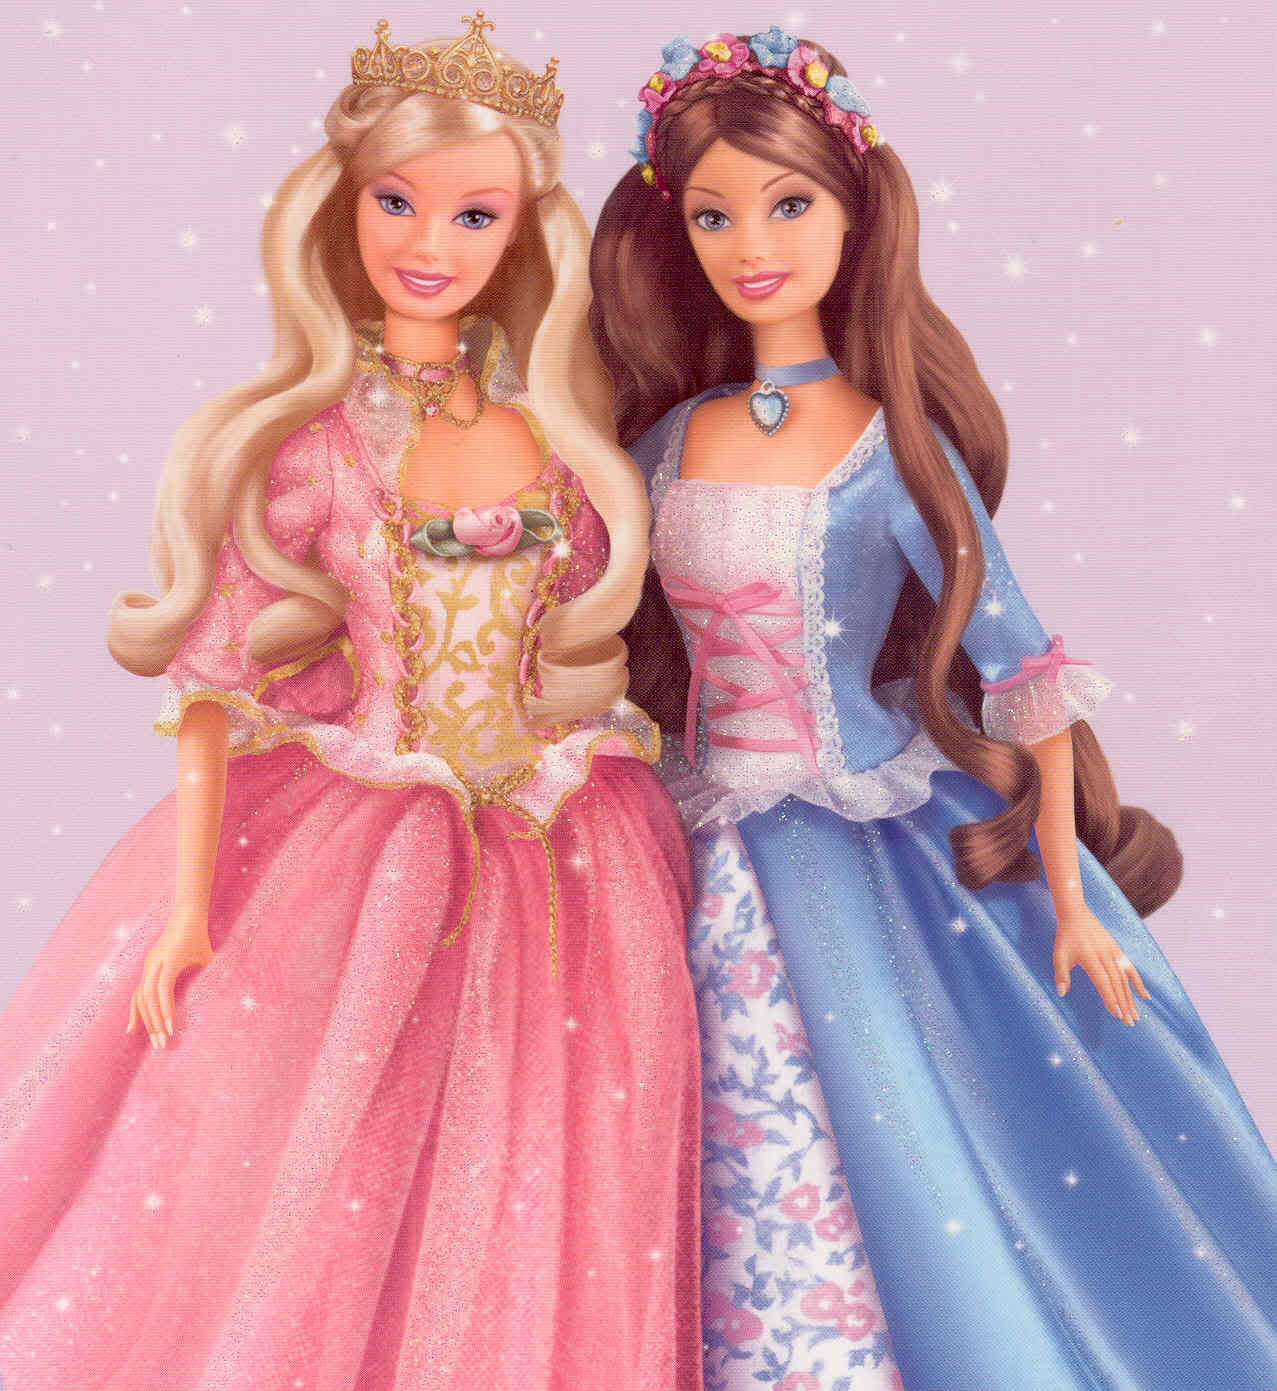 Barbie Princess Barbie And Disney Princess 3 32647776 1277 1391